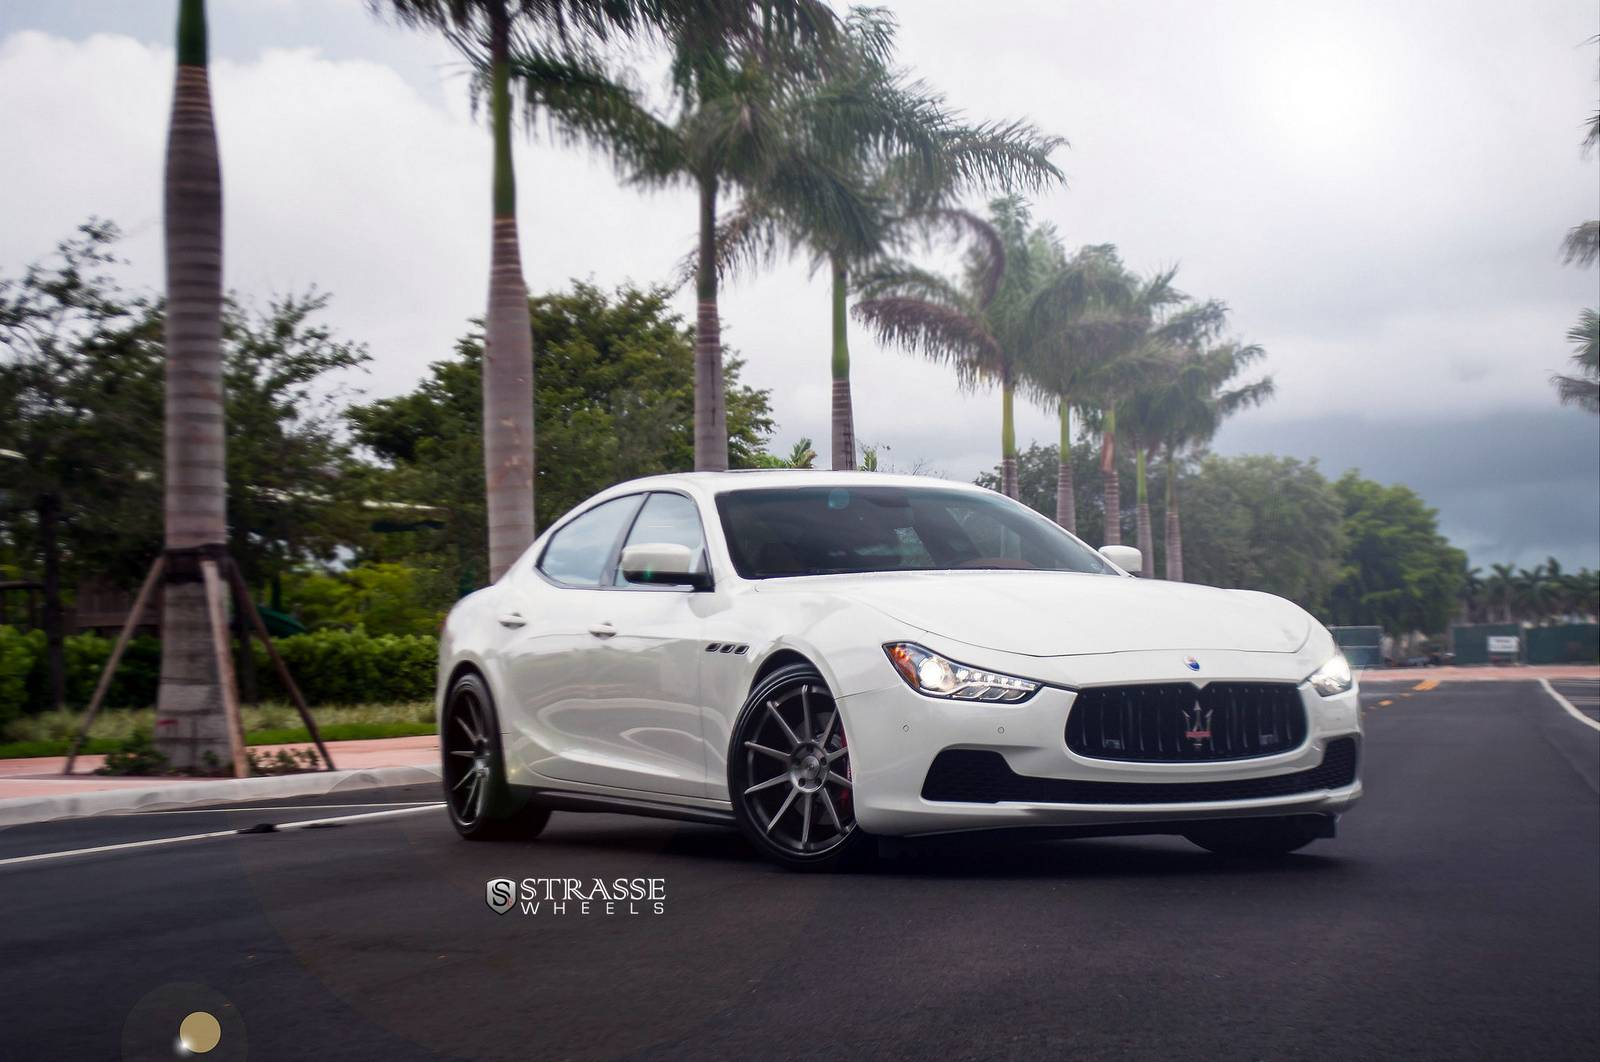 stunning bianco maserati ghibli s q4 with strasse wheels gtspirit. Black Bedroom Furniture Sets. Home Design Ideas